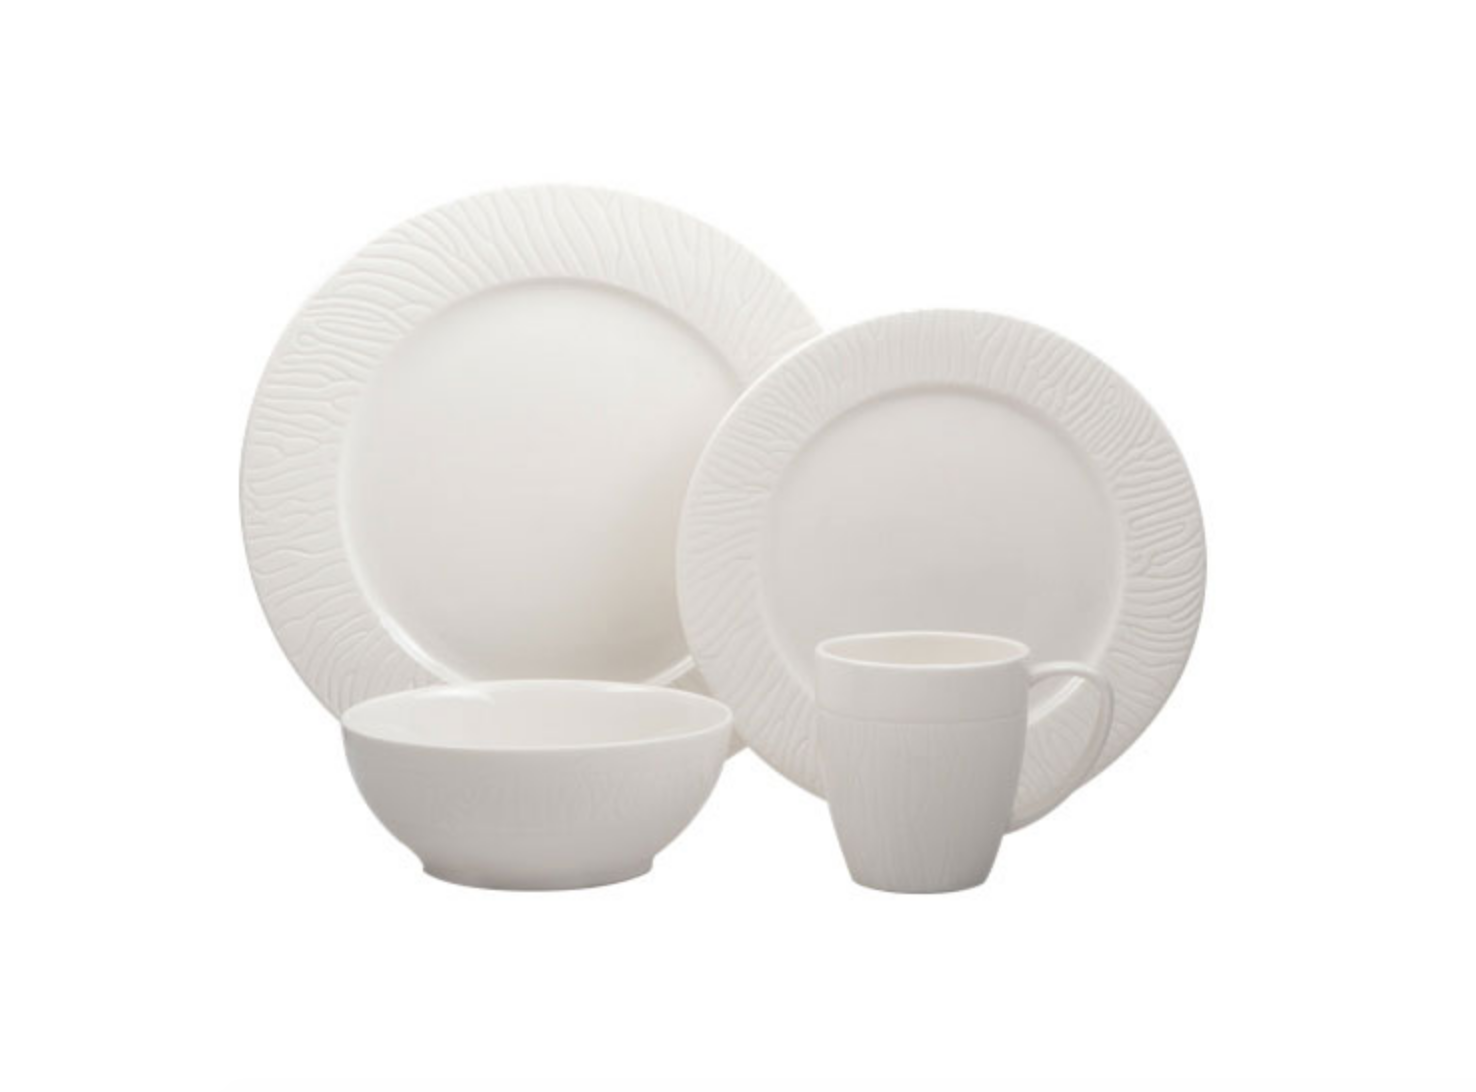 tableware essentials for moving out